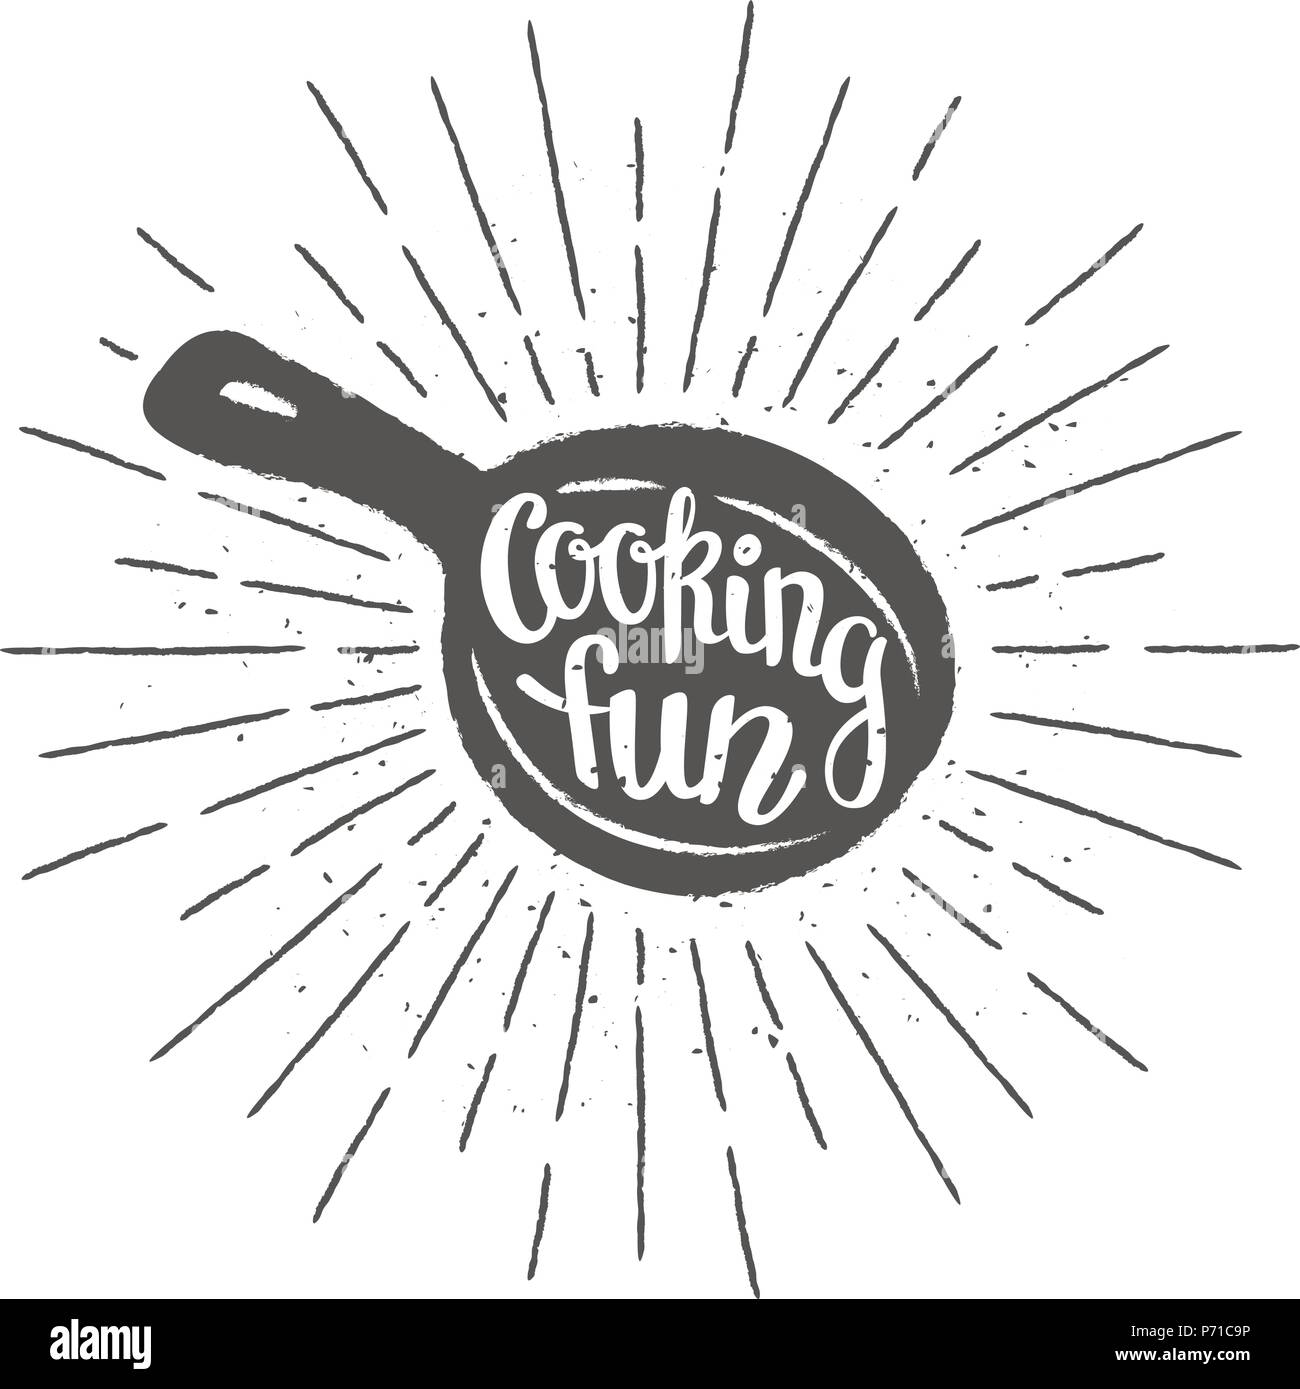 Pan silhoutte with lettering - Cooking fun - and vintage sun rays. Good for cooking logotypes, bades or posters. Stock Vector